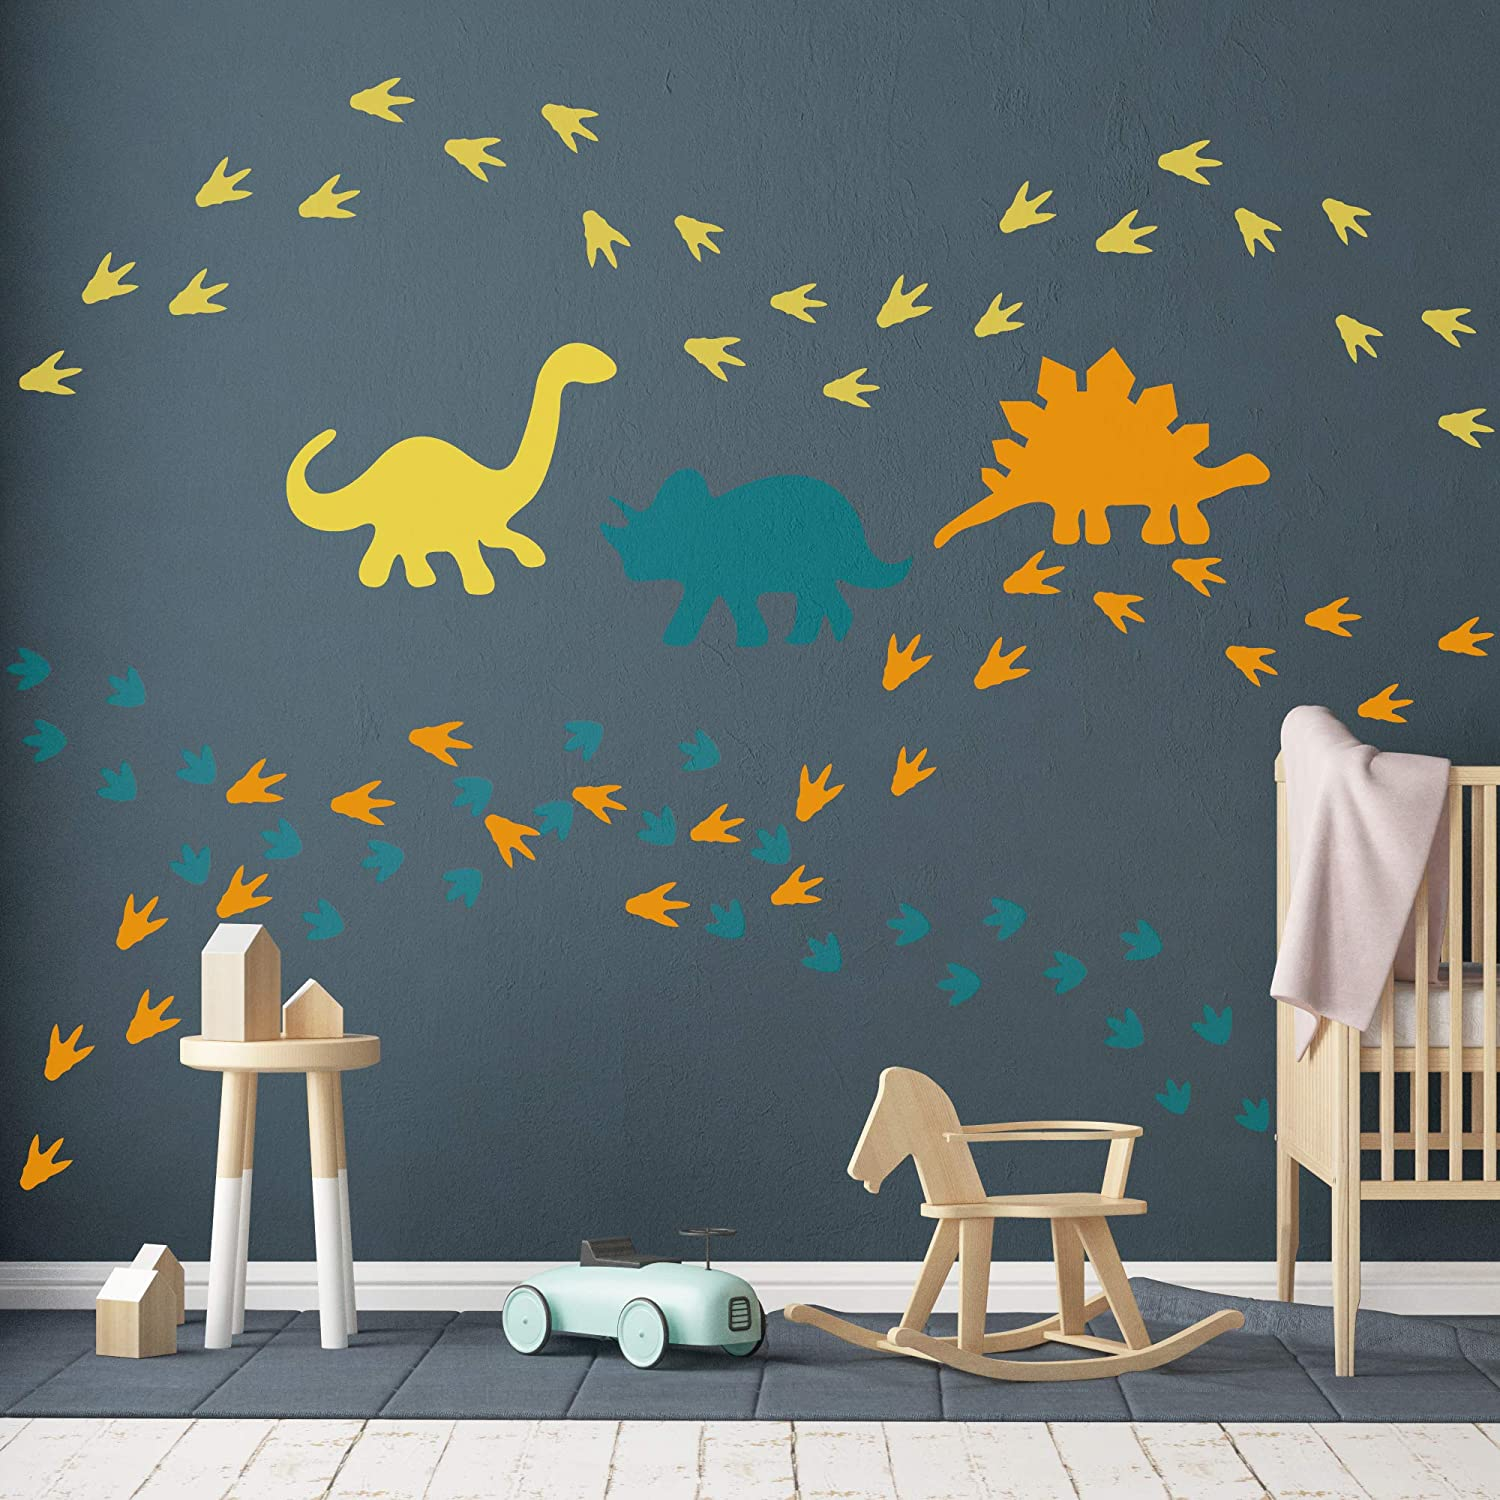 Dinosaur Wall Decal-Dinosaur Footprints&Tracks Stickers-Vinyl Wall Art for Baby Boys&Girls Kids Bedroom Nursery Decor